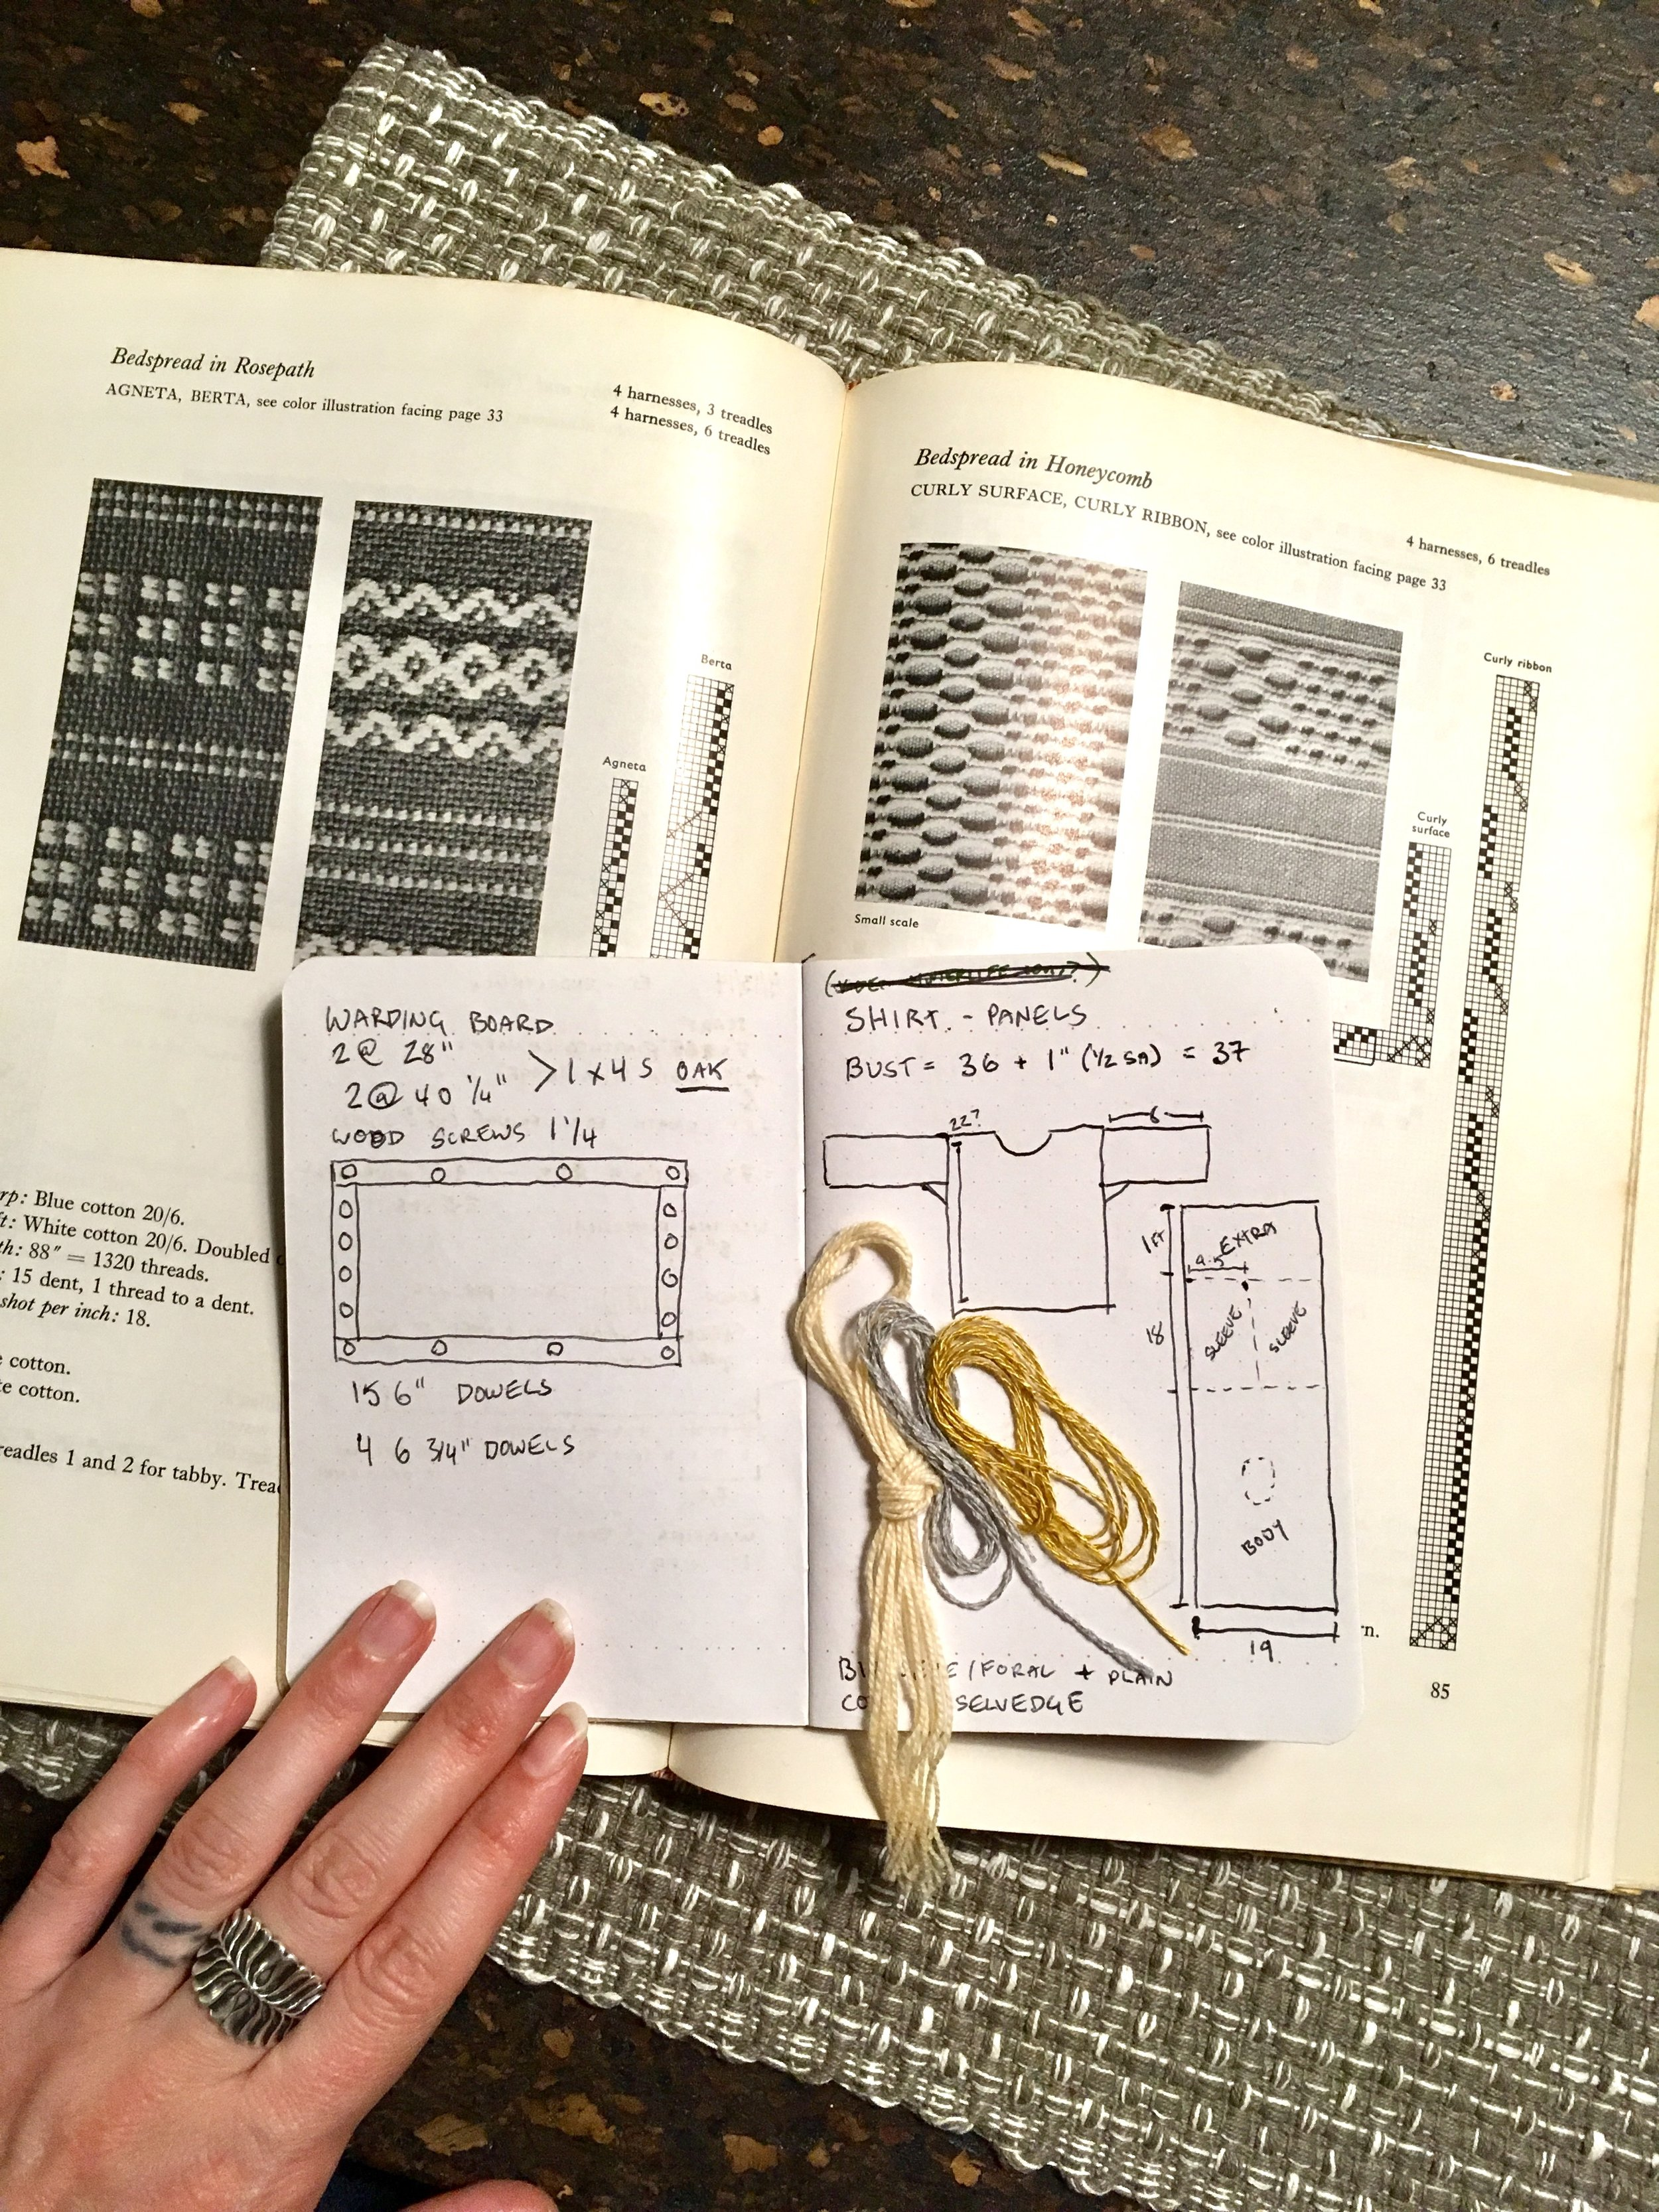 Looking through an old weaving book for pattern/threading ideas.